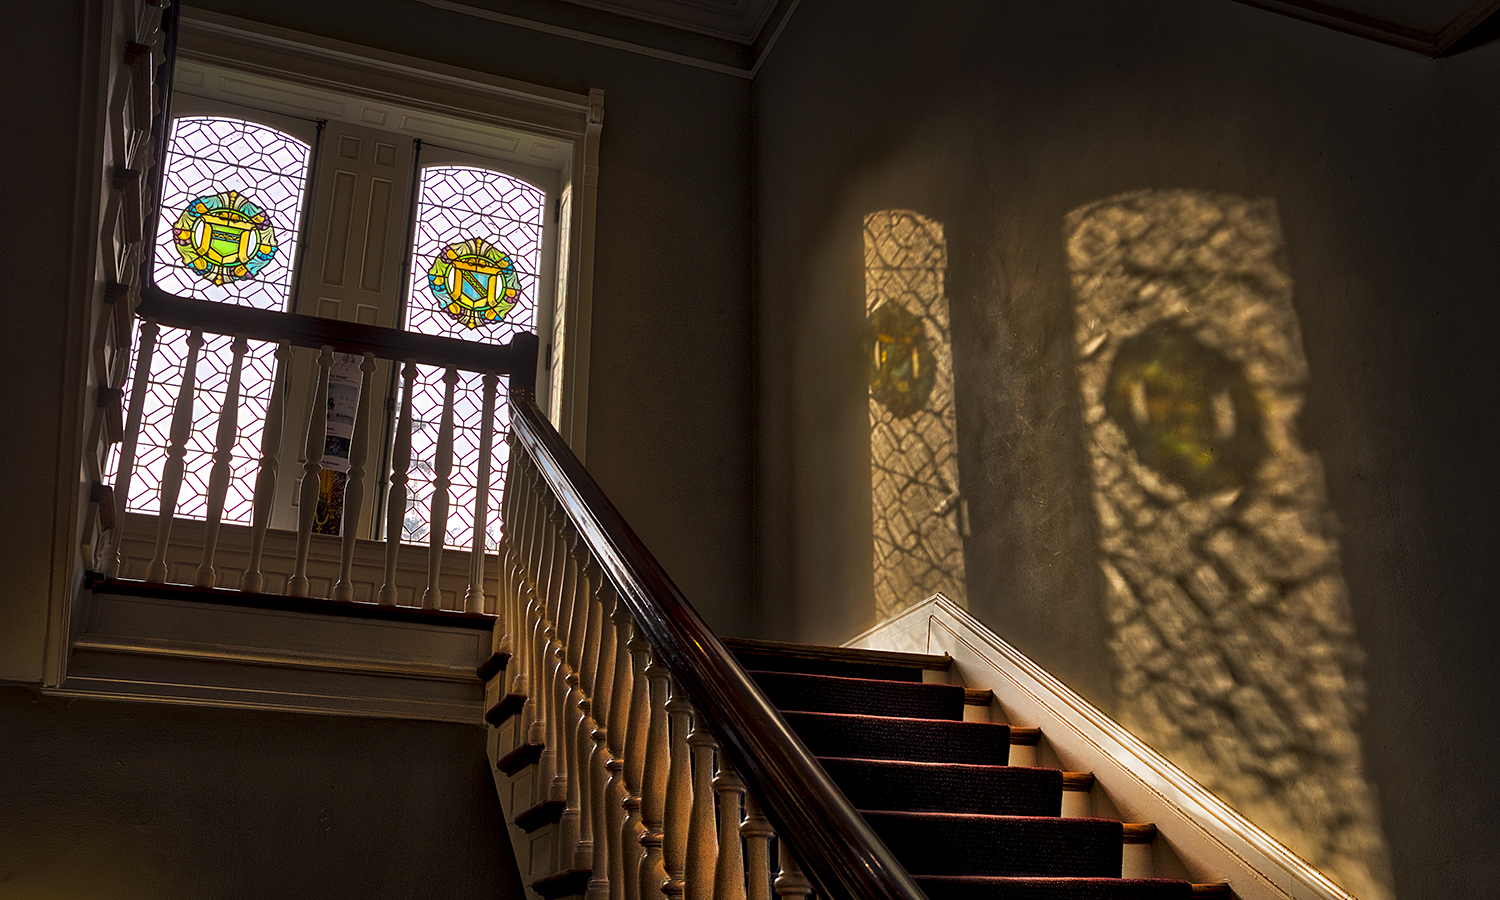 Houghton Stairs